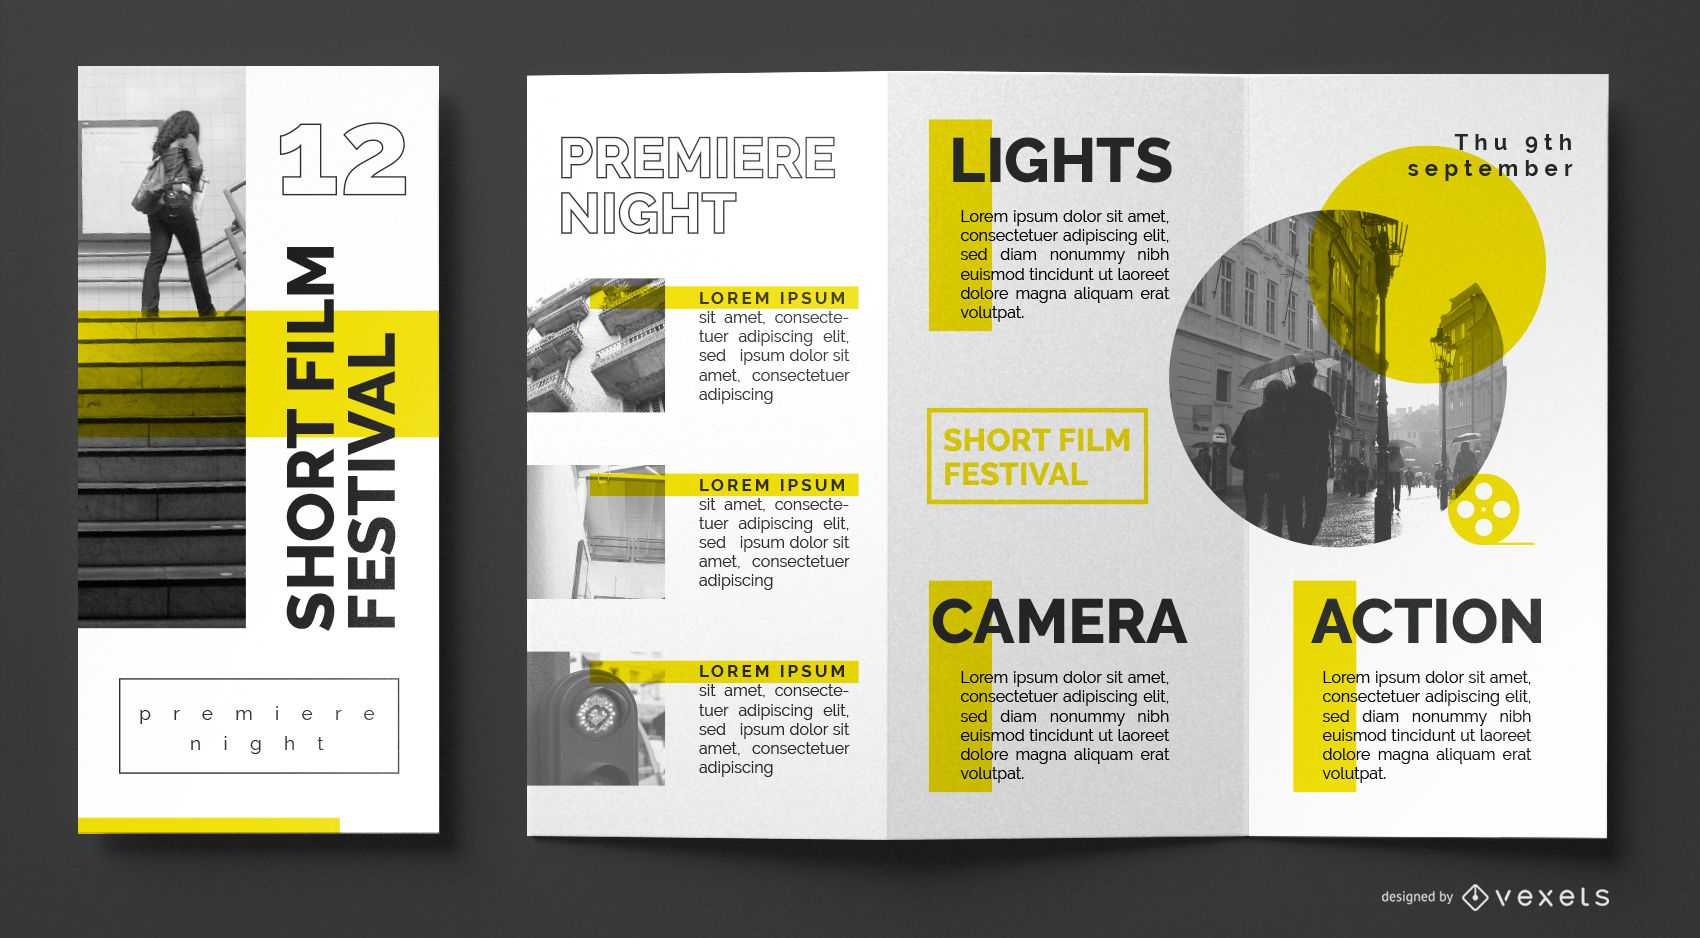 Film Festival Brochure Template - Vector Download Throughout Film Festival Brochure Template